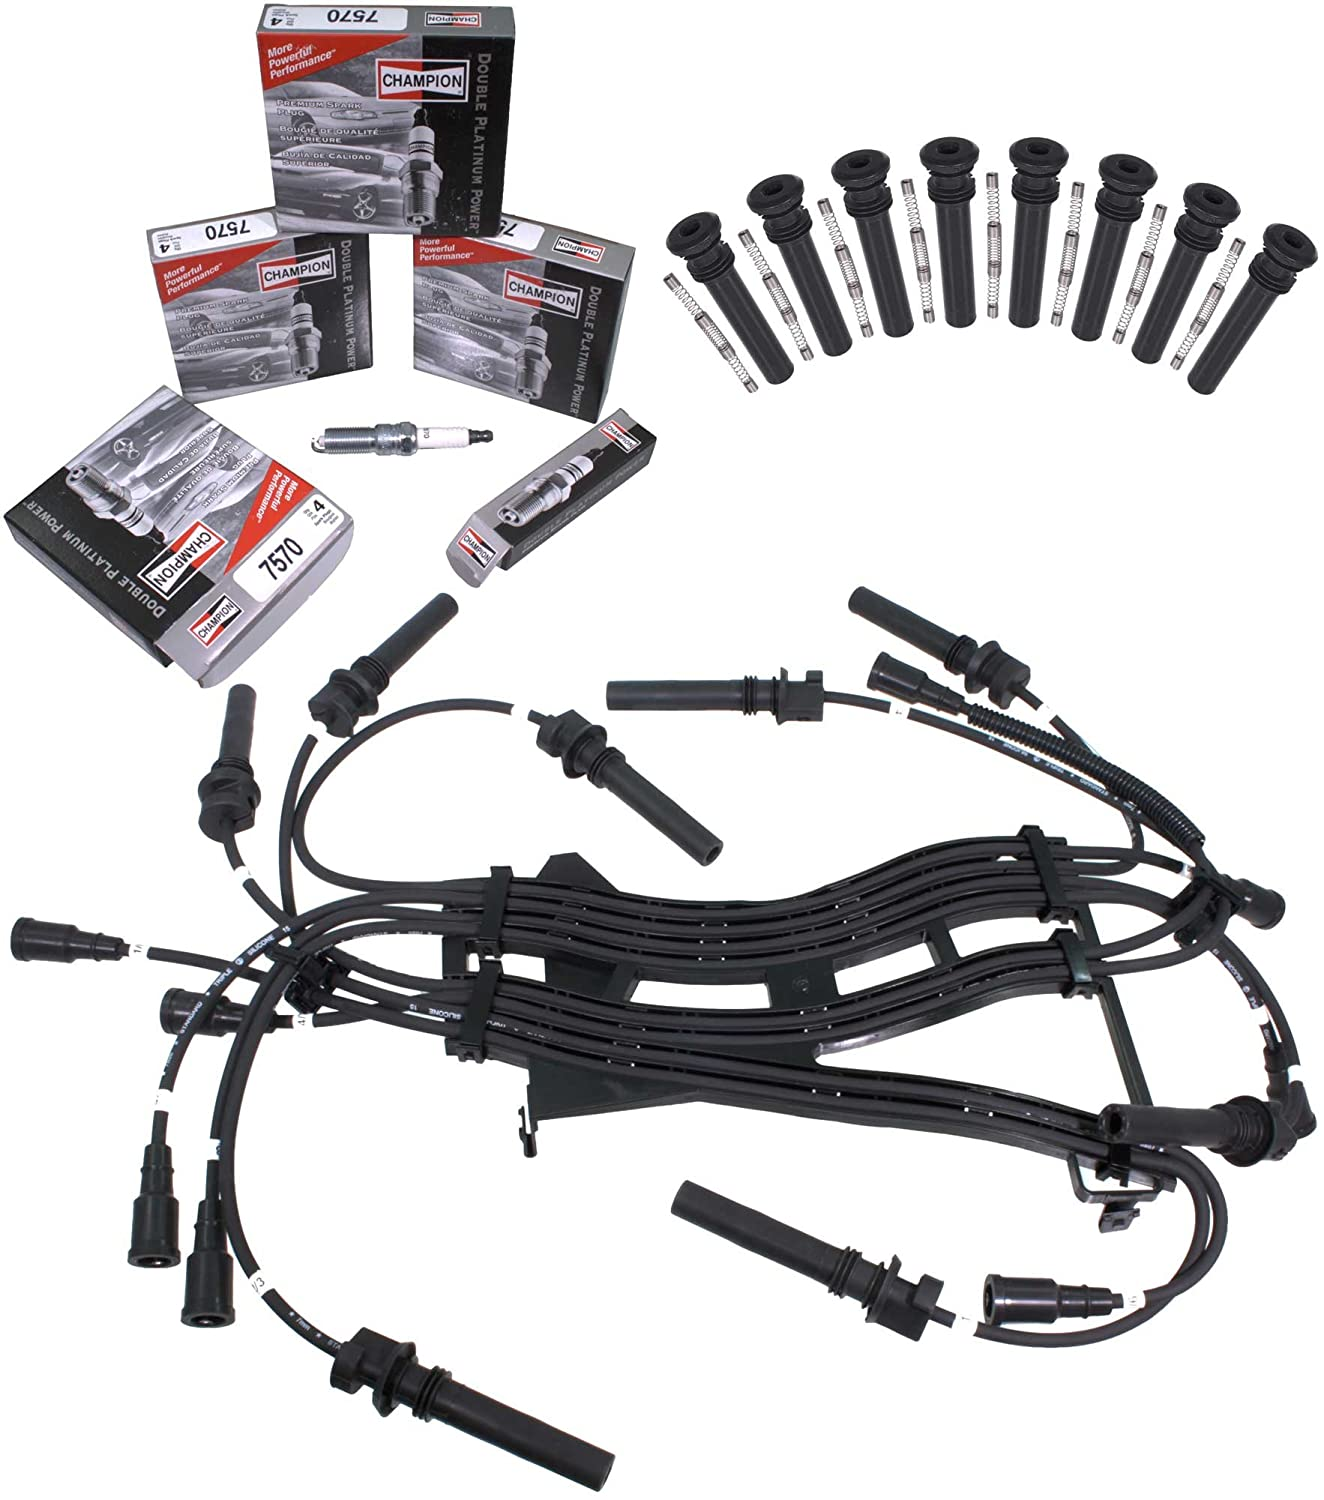 2004 Dodge Ram Hemi Spark Plug Wire Diagram 43 Wiring Ignition Diagrams 81djnyzzpzl Sl1500 Amazon Com Apdty Tune Up Kit Includes 16 Oem Plugs